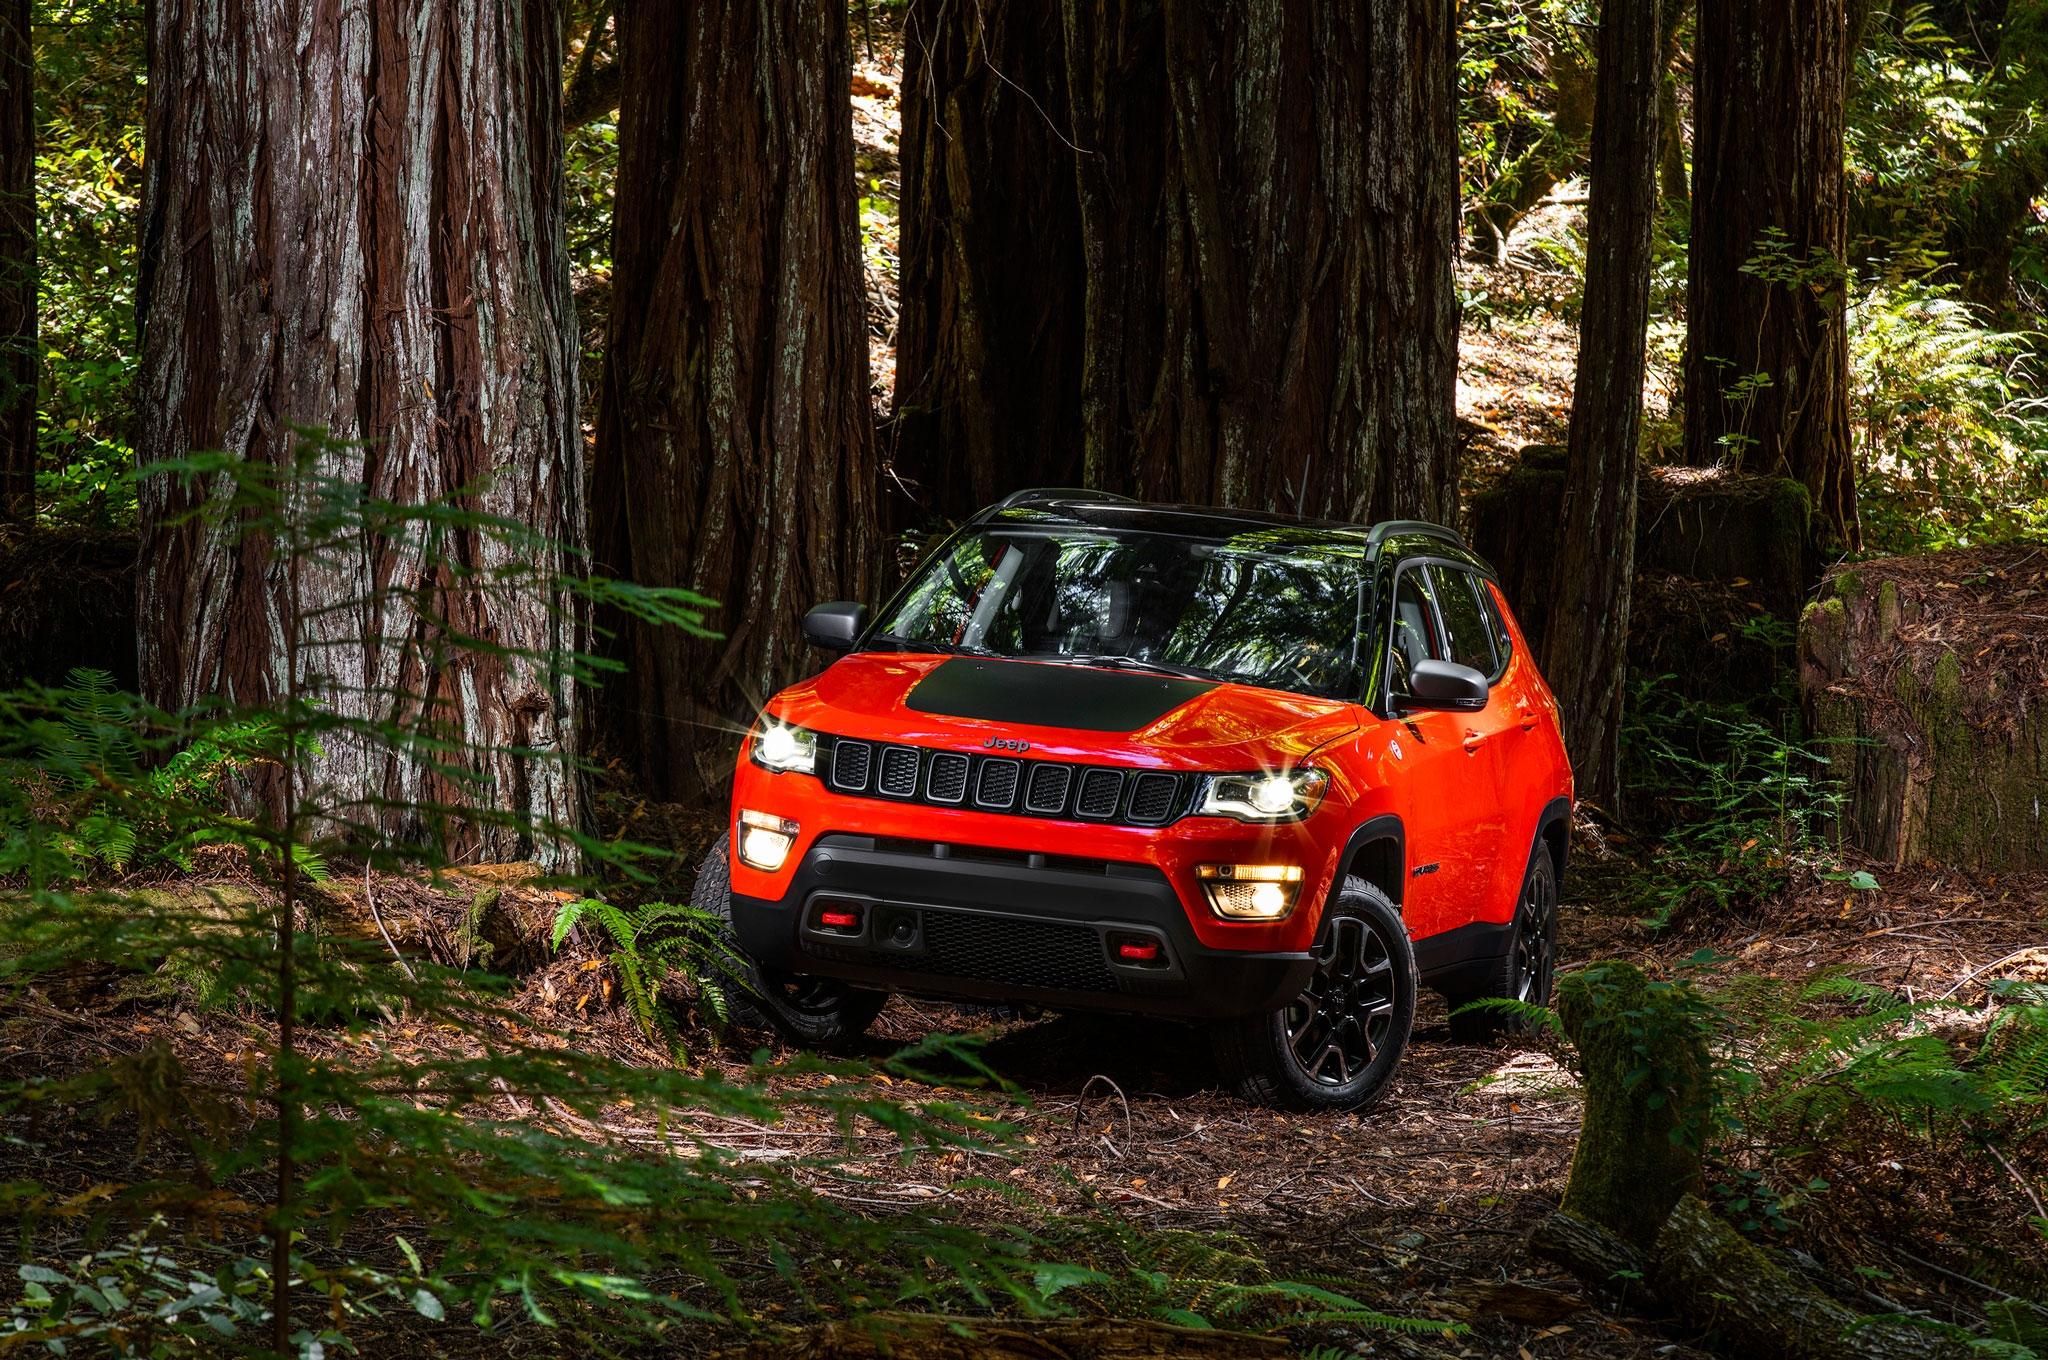 2017 Jeep Compass Hd Cars 4k Wallpapers Images Backgrounds Photos And Pictures